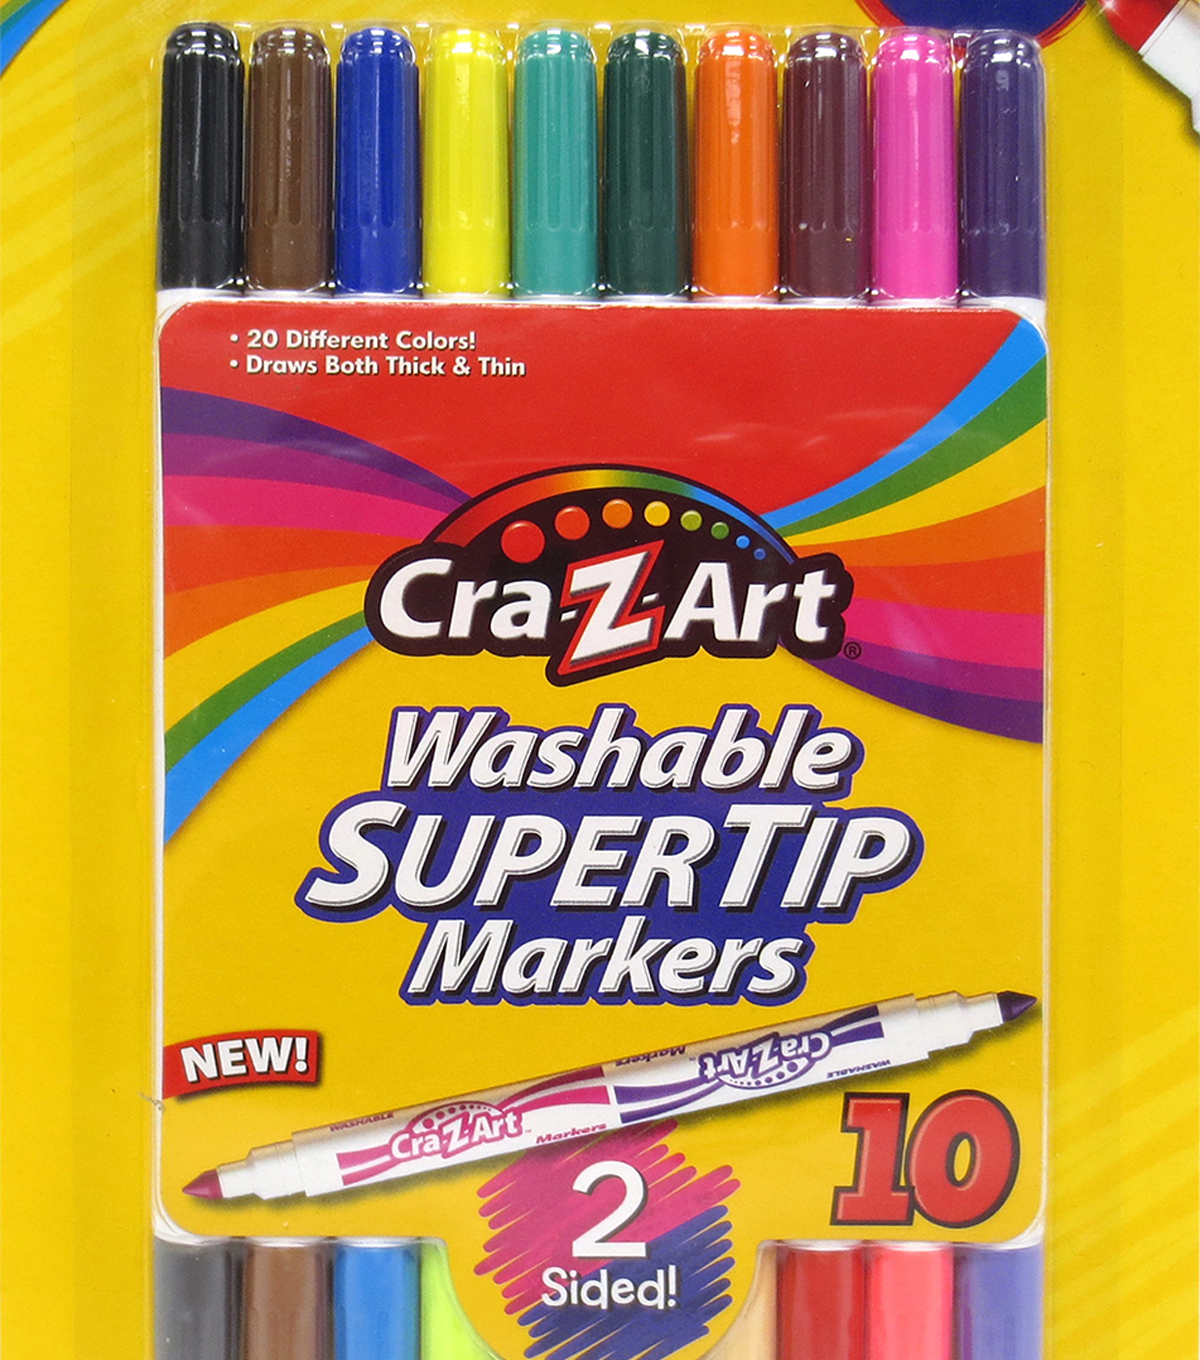 Cra-Z-Art 10 pk Washable Double-sided Super Tip Markers